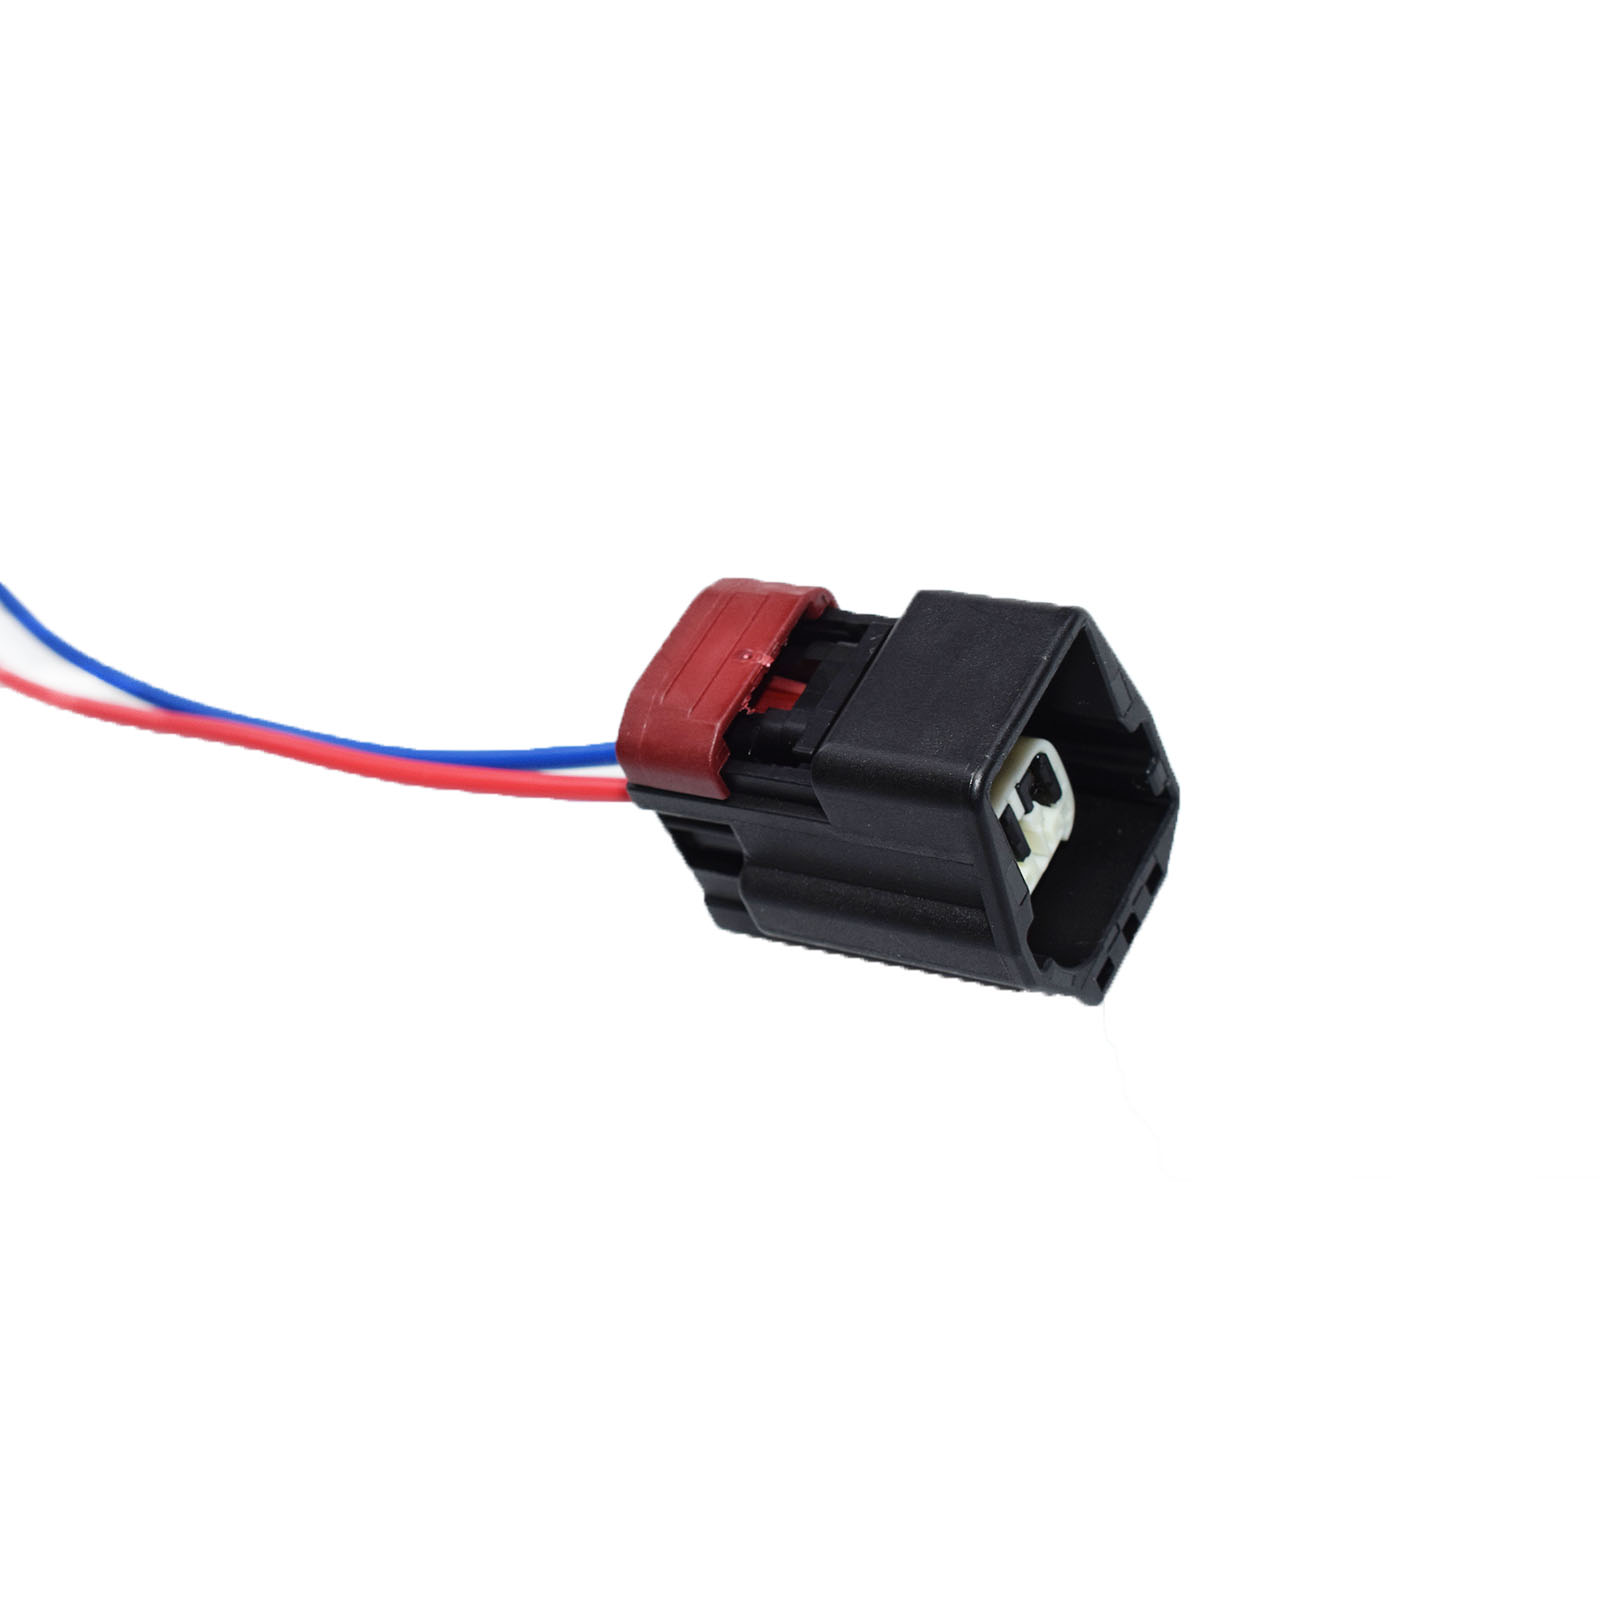 ABS Wheel Speed Sensor Connector For Dodge Ram Jaguar Ford